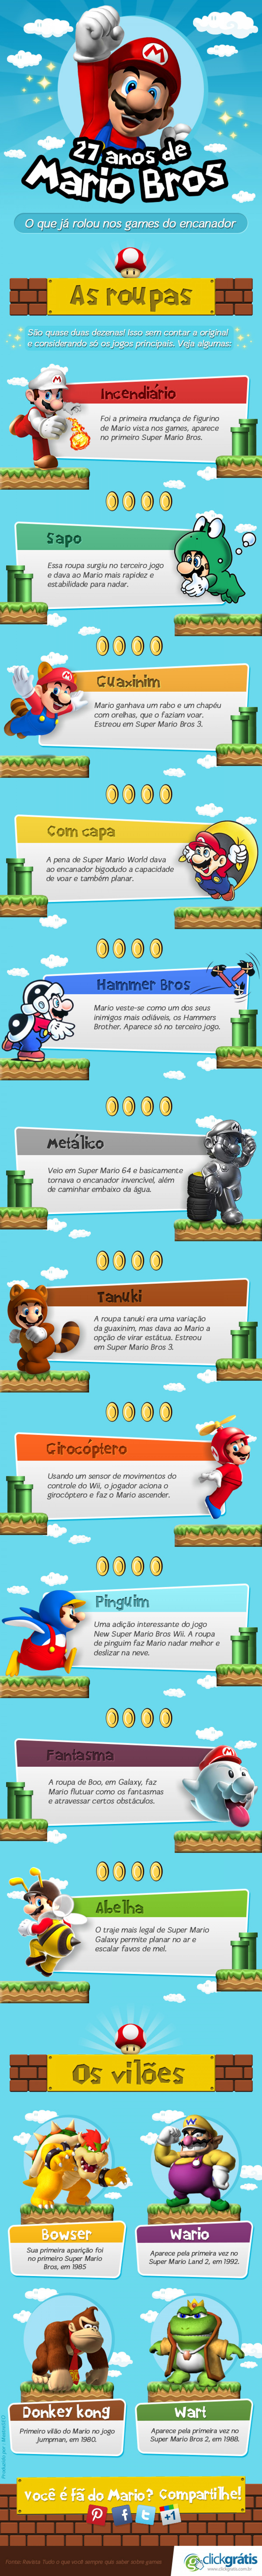 Super Mario Bros. Celebrates Its 27th Anniversary Infographic